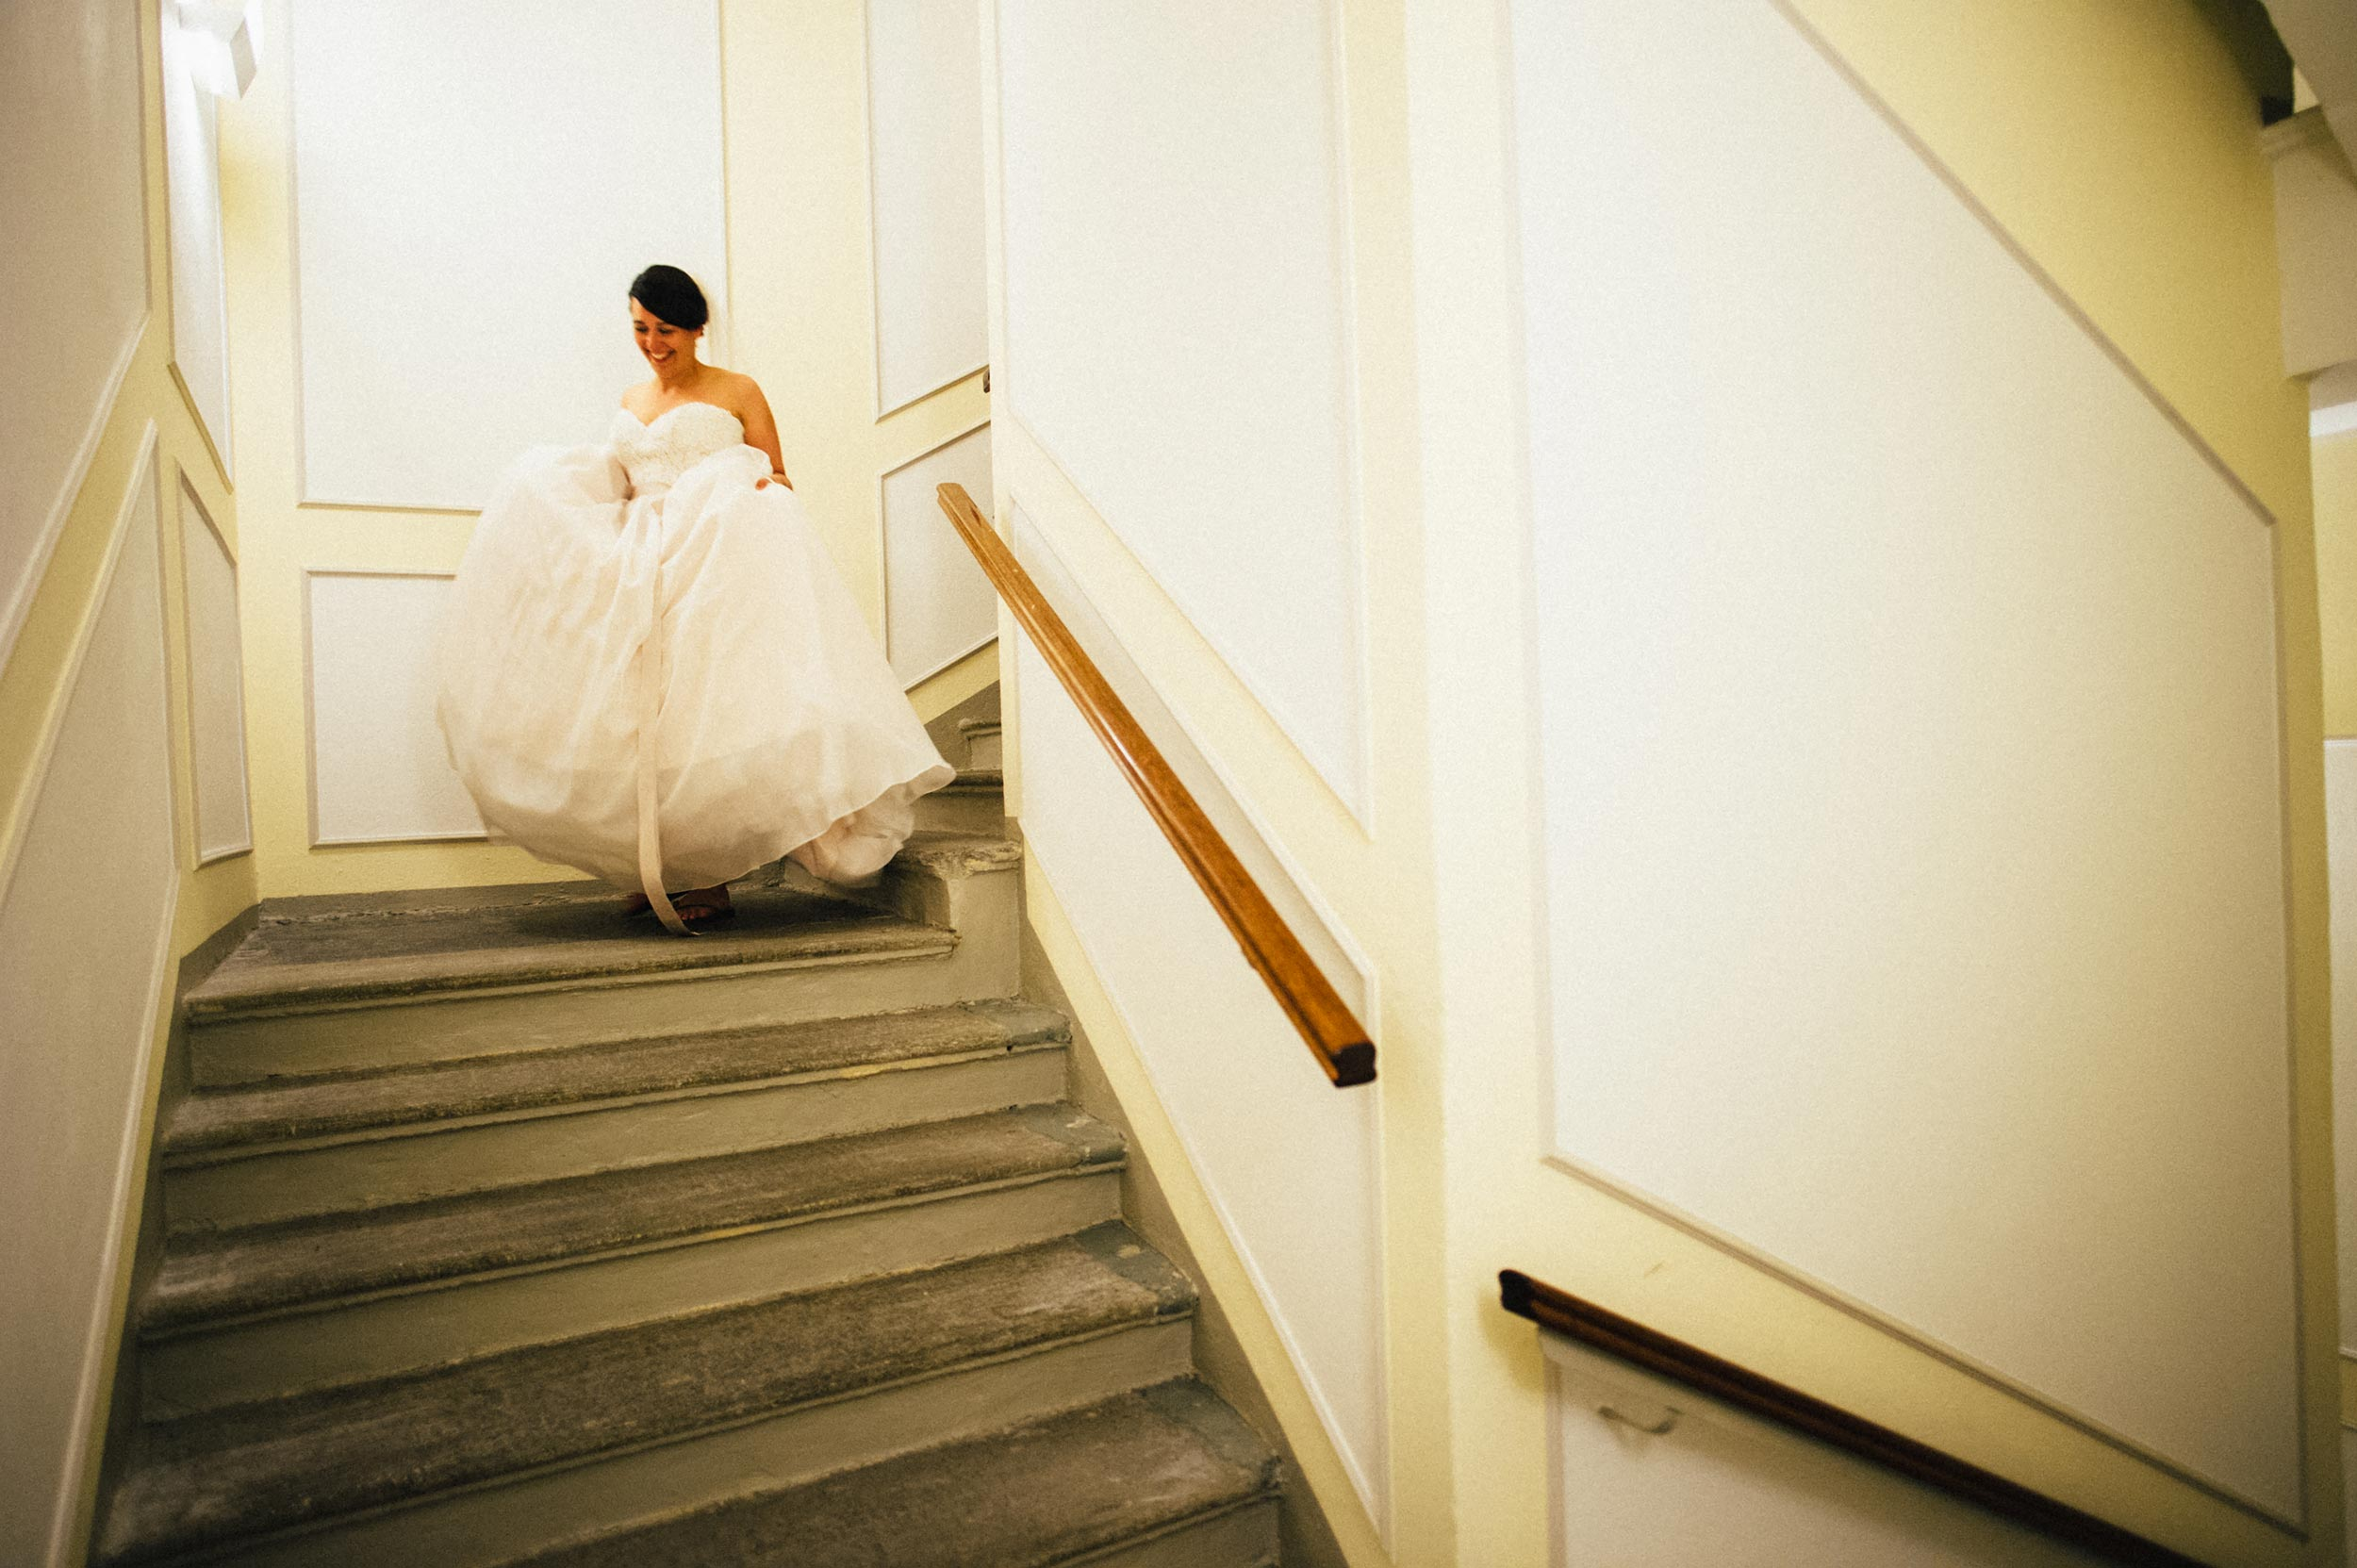 2015-Jon-Lauren-Bellagio-Lake-Como-Wedding-Photographer-Italy-Alessandro-Avenali-13.jpg